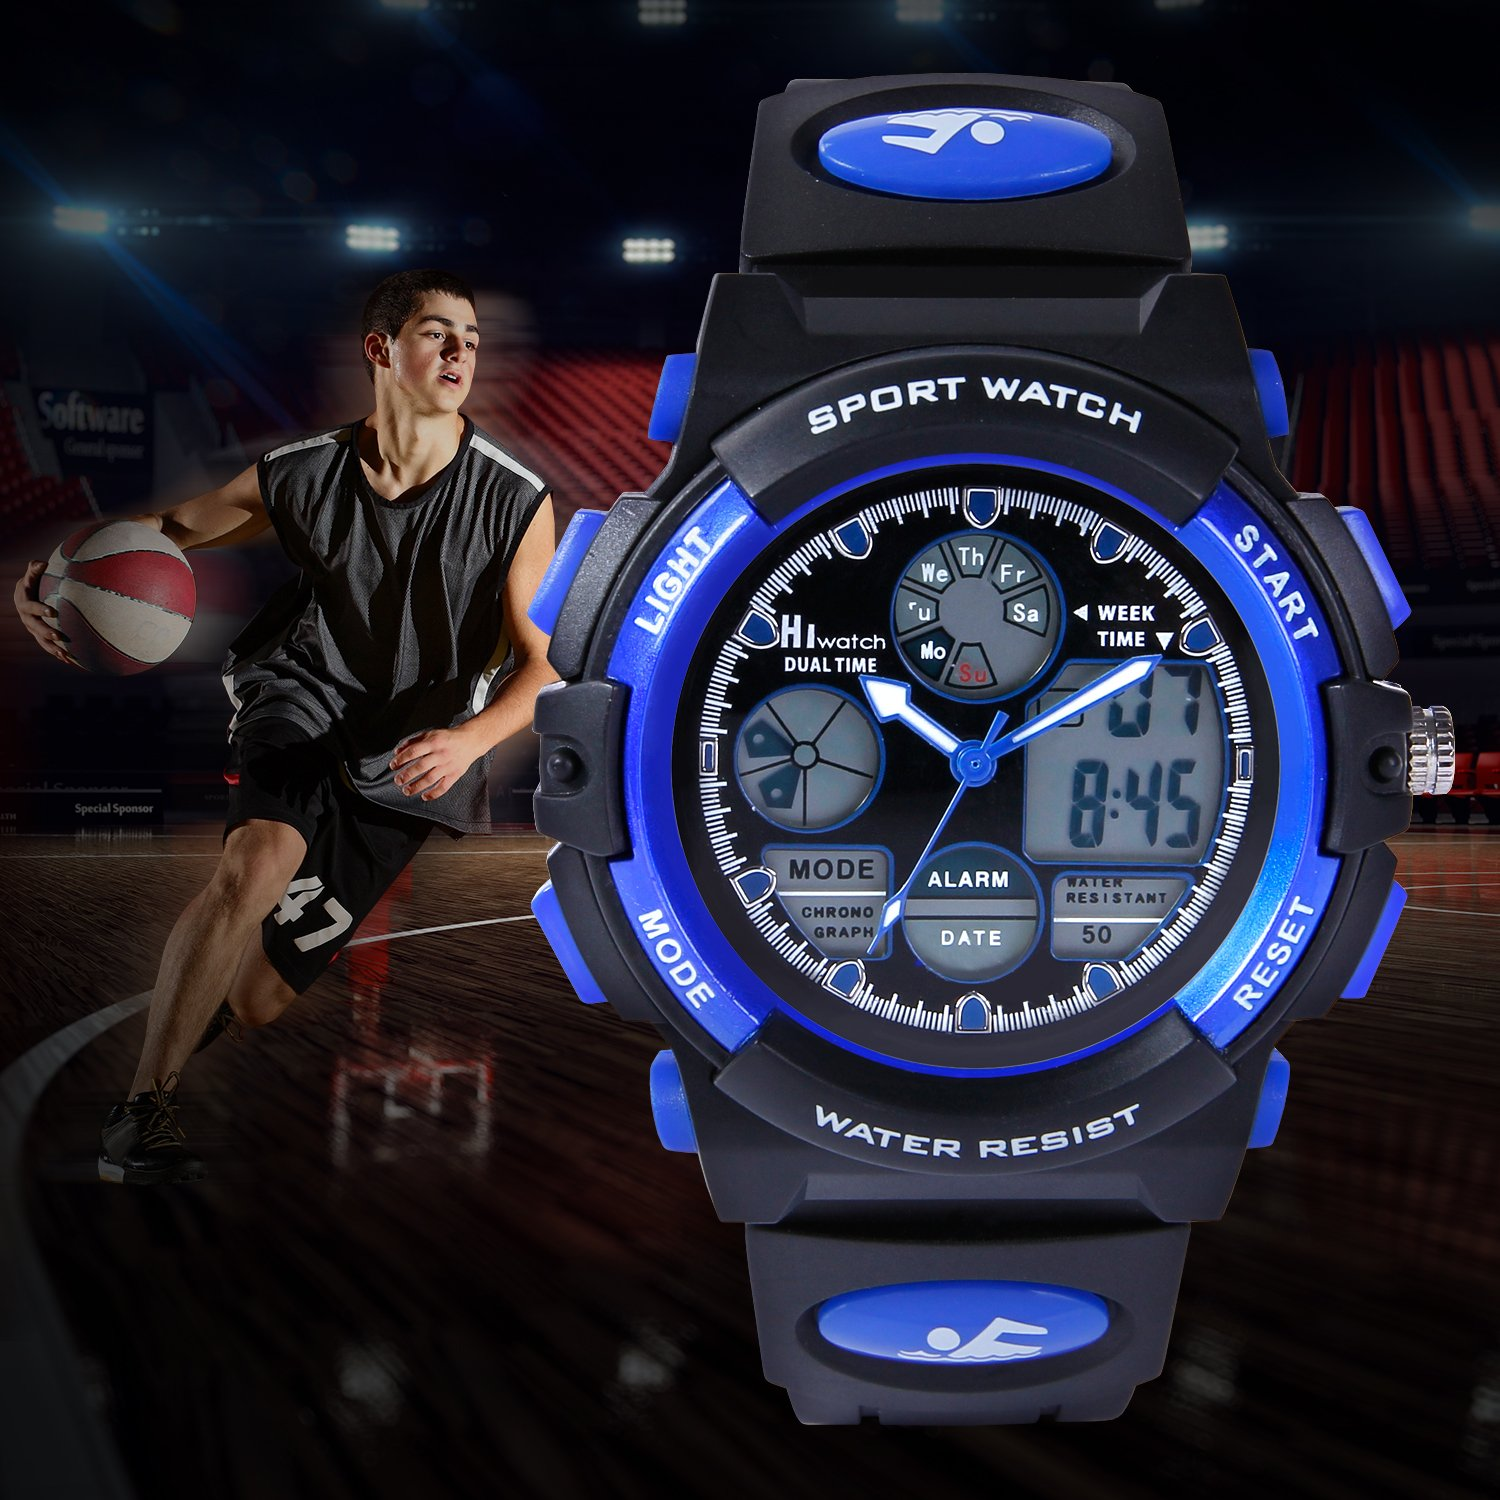 HIwatch Youth Watches Boys Girls Water-resistant Sports Digital Wrist Watch for Teenager Students,Blue by Hi Watch (Image #7)